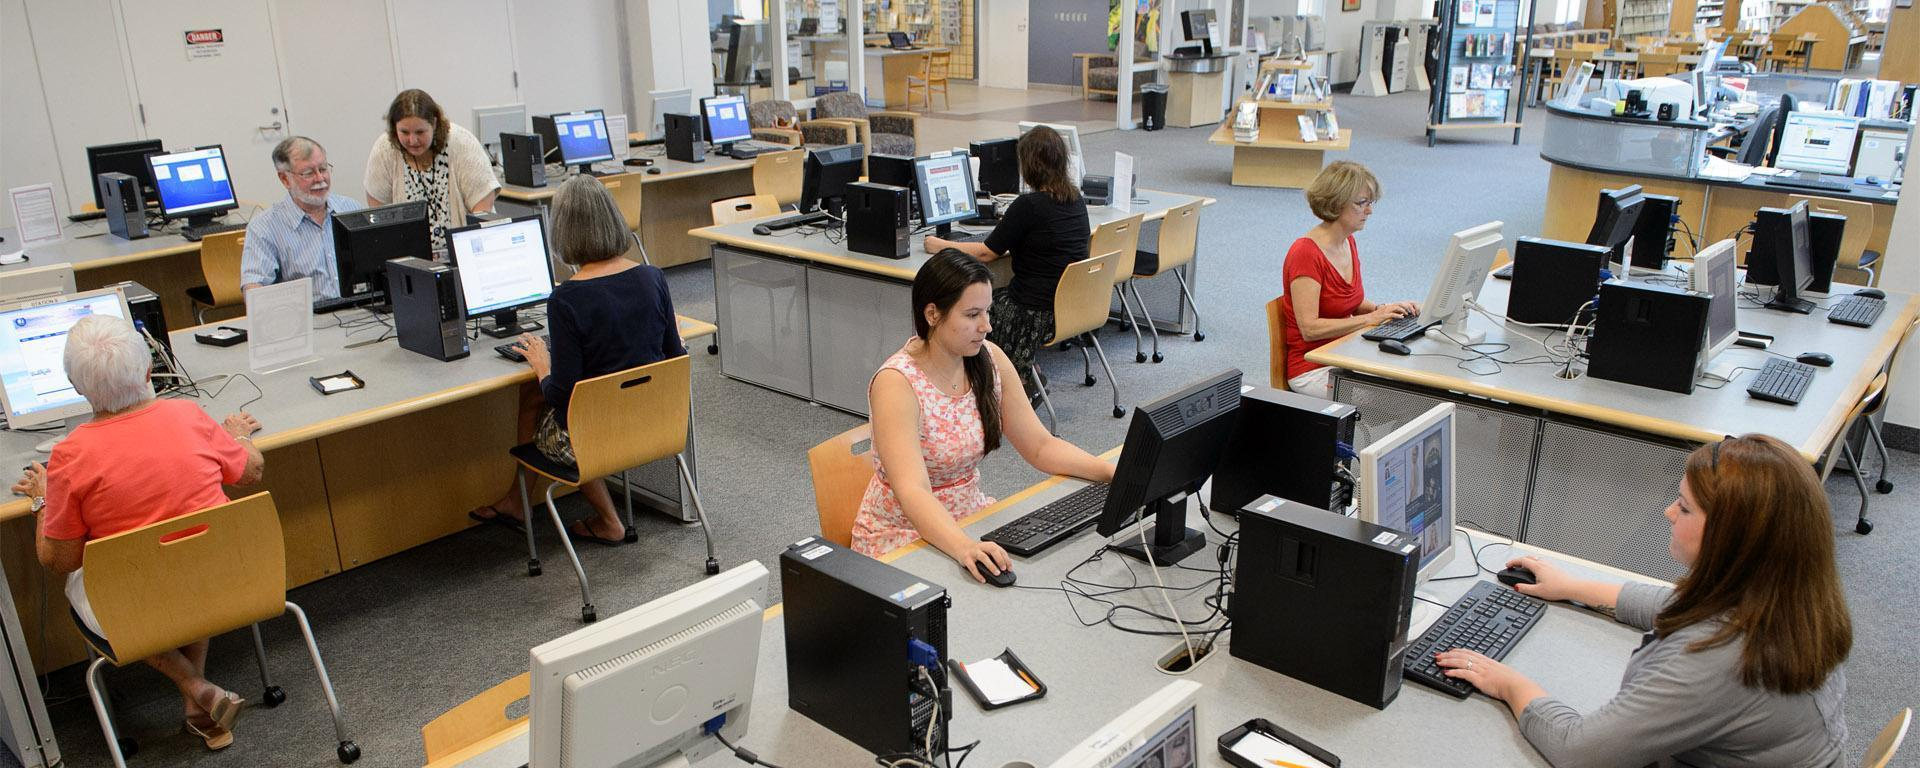 image of the blake library public computer area